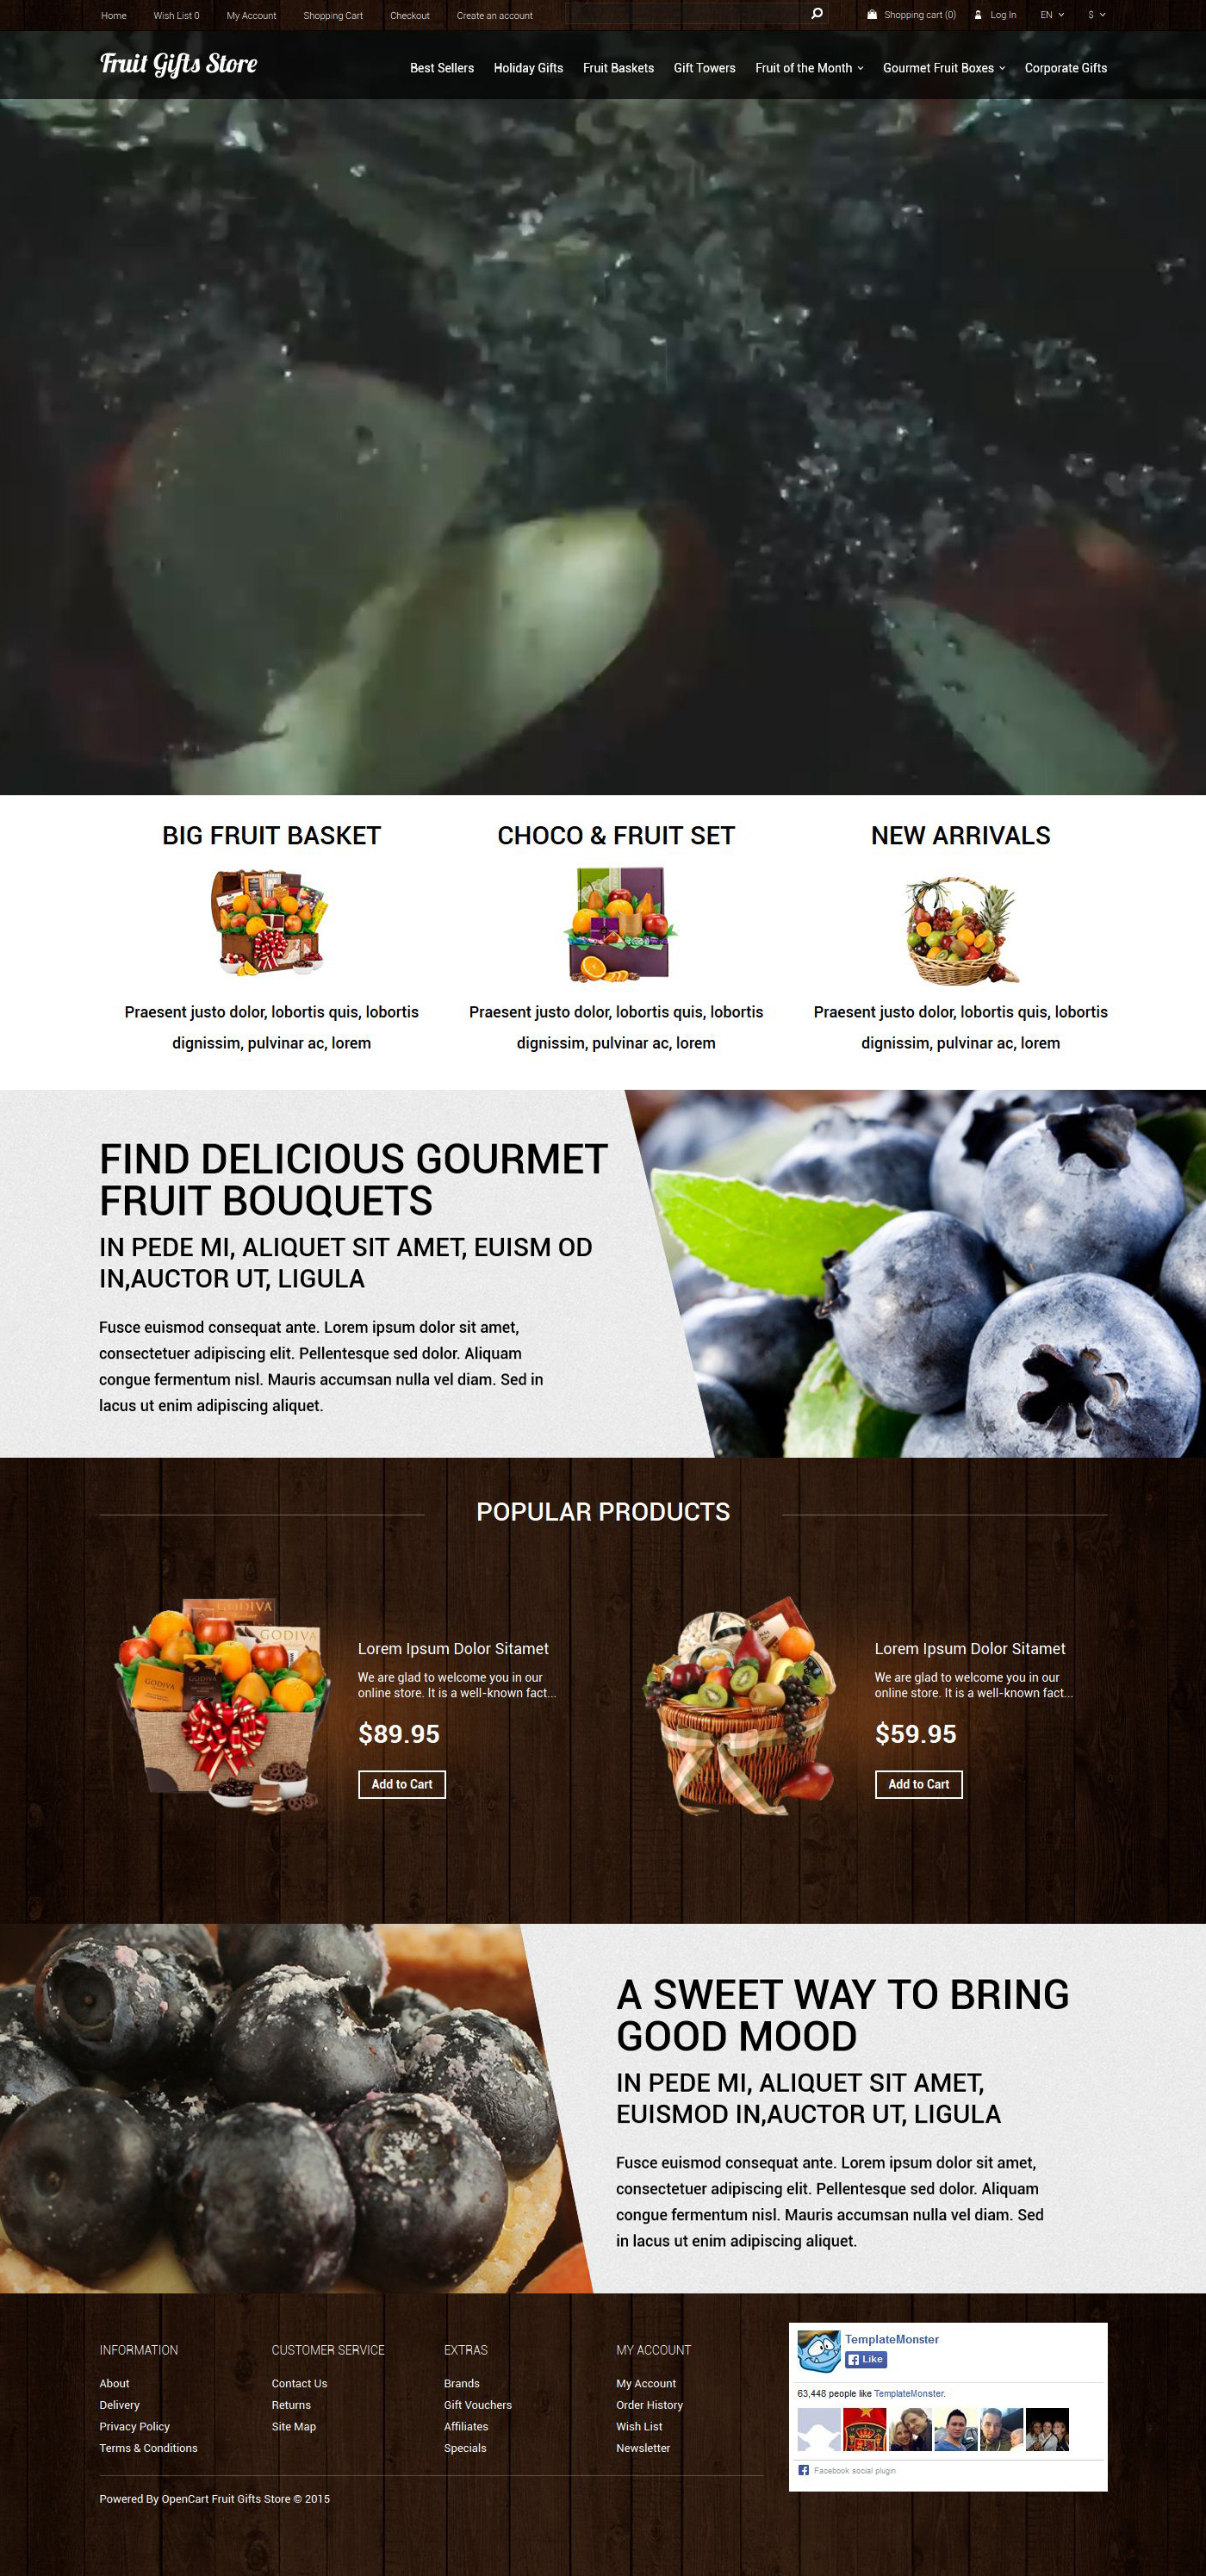 The Fruit Gift Store OpenCart Design 53041, one of the best OpenCart templates of its kind (gifts, most popular), also known as fruit gift store OpenCart template, fruits OpenCart template, dried OpenCart template, basket OpenCart template, gift OpenCart template, chocolate OpenCart template, strawberries OpenCart template, gourmet OpenCart template, chocolate-dipped OpenCart template, citrus OpenCart template, delicacy and related with fruit gift store, fruits, dried, basket, gift, chocolate, strawberries, gourmet, chocolate-dipped, citrus, delicacy, etc.